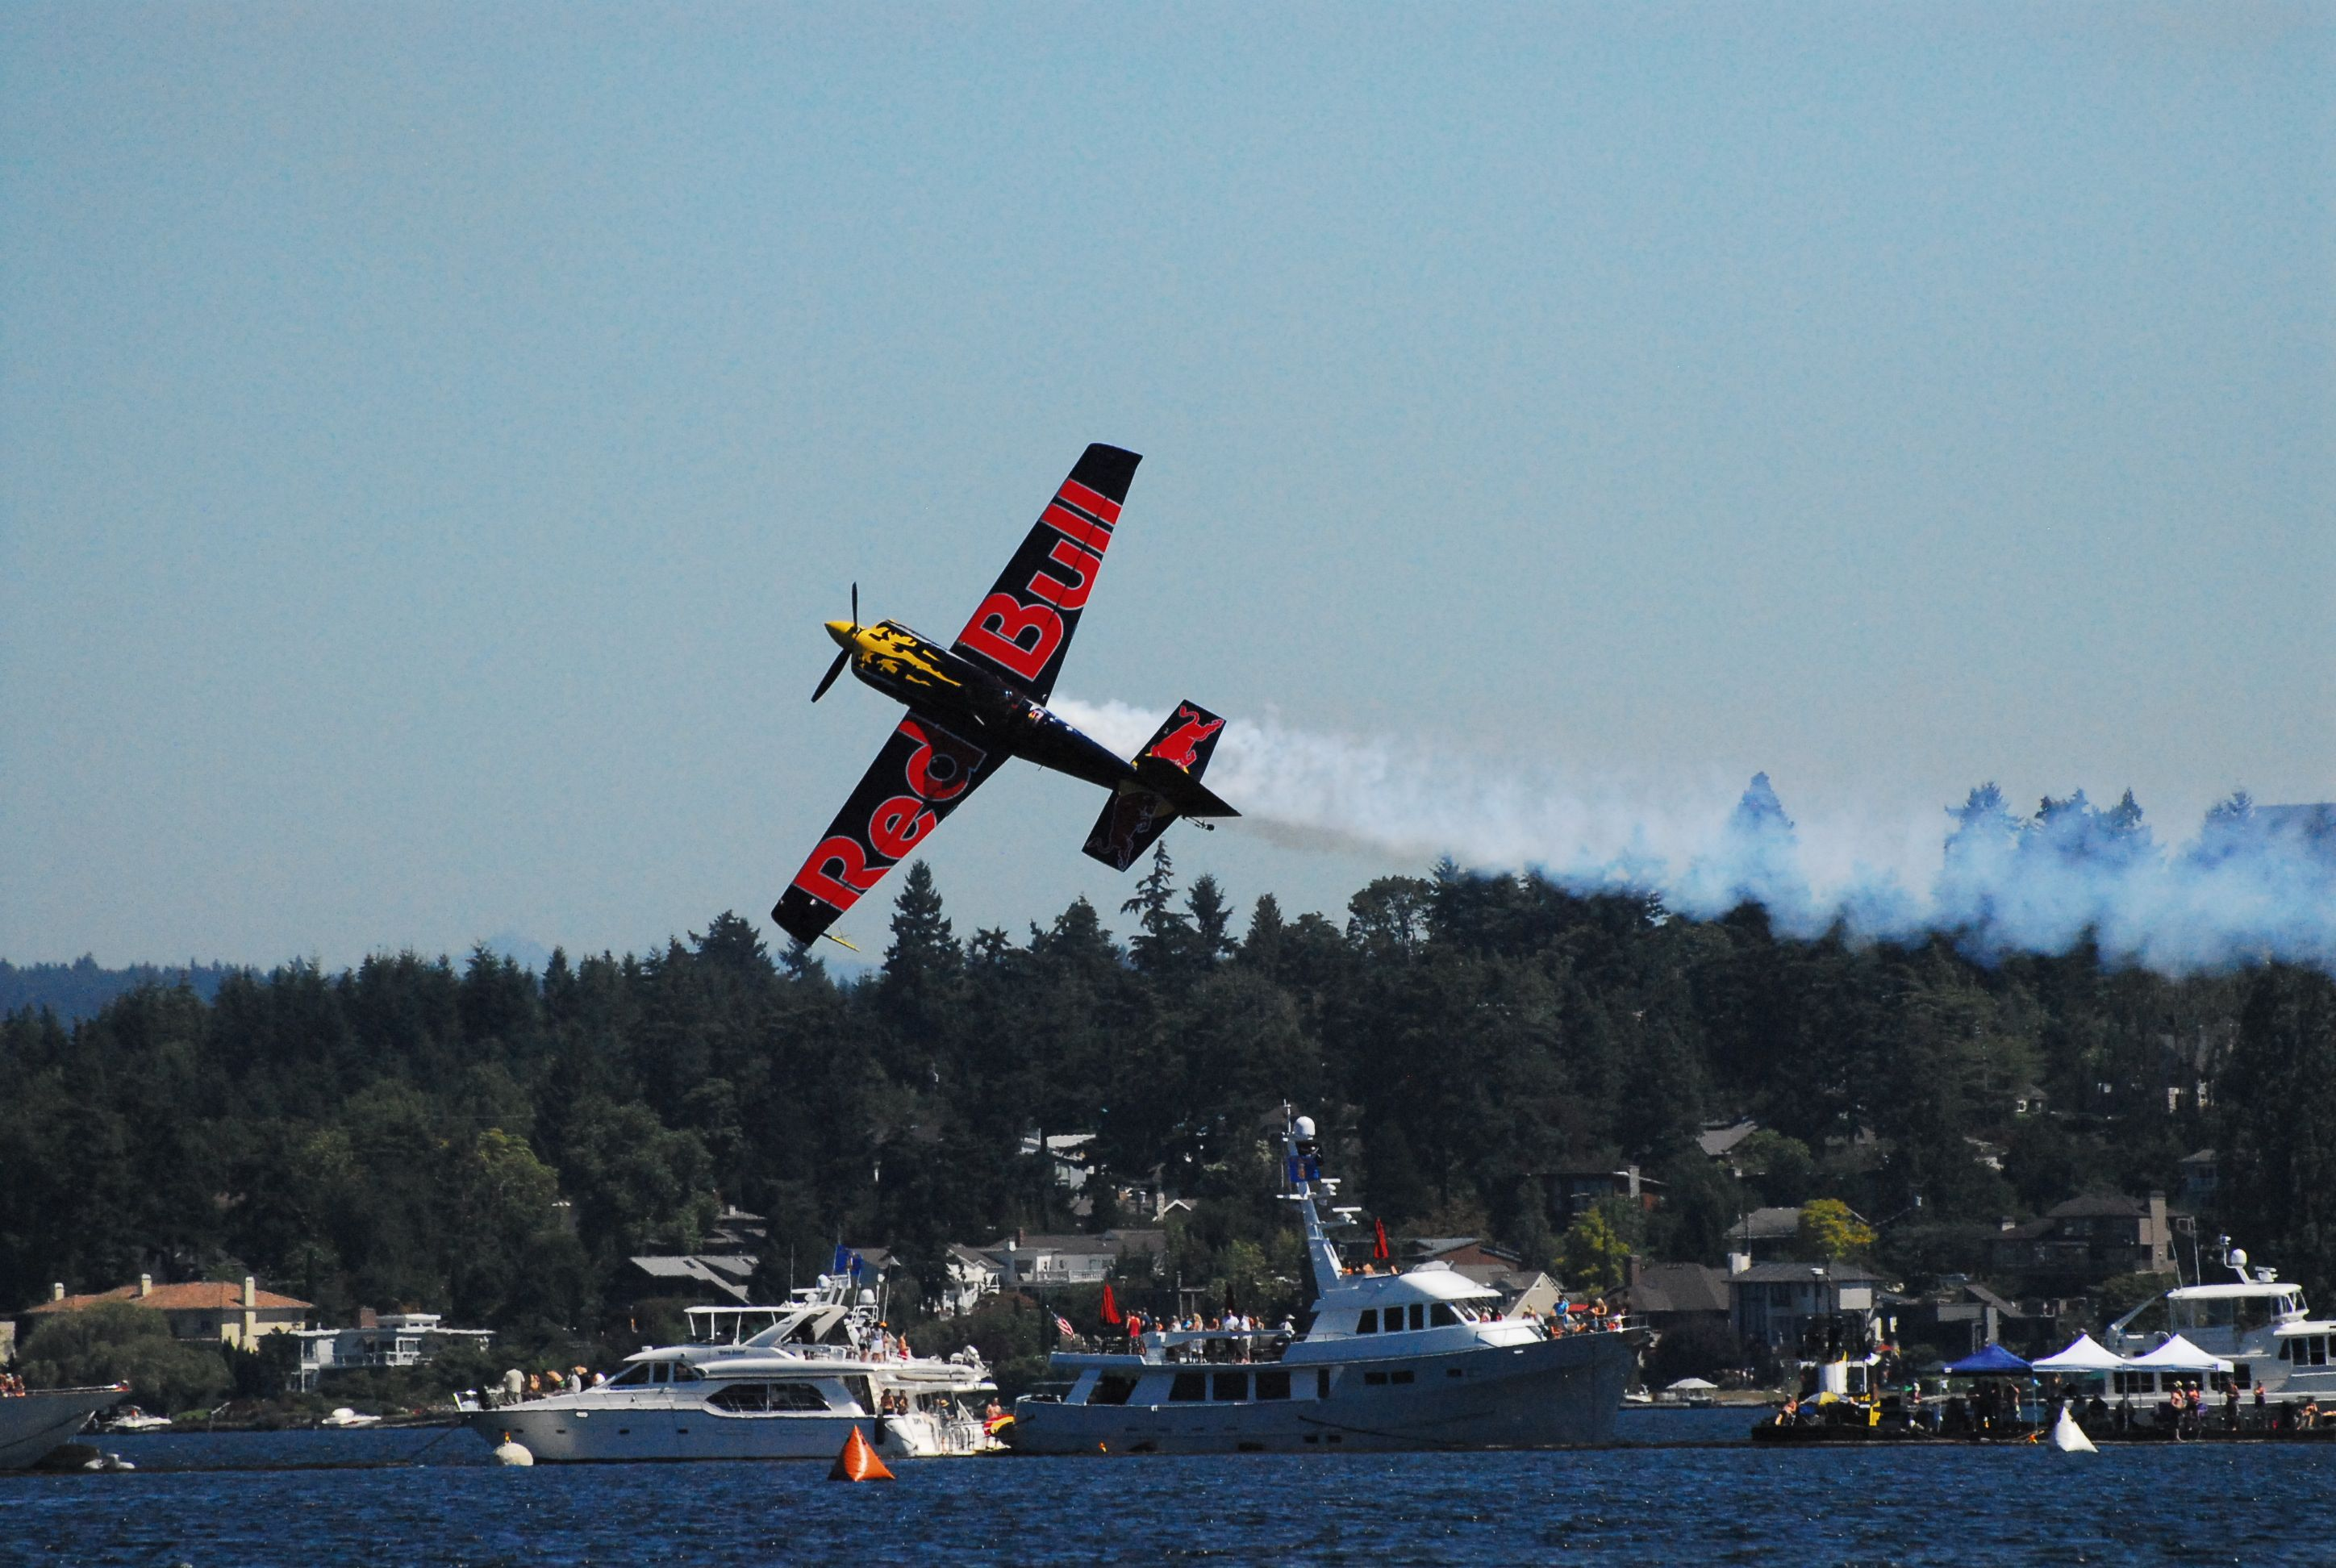 Pin by Seafair Festival on Boeing Air Show Fighter jets